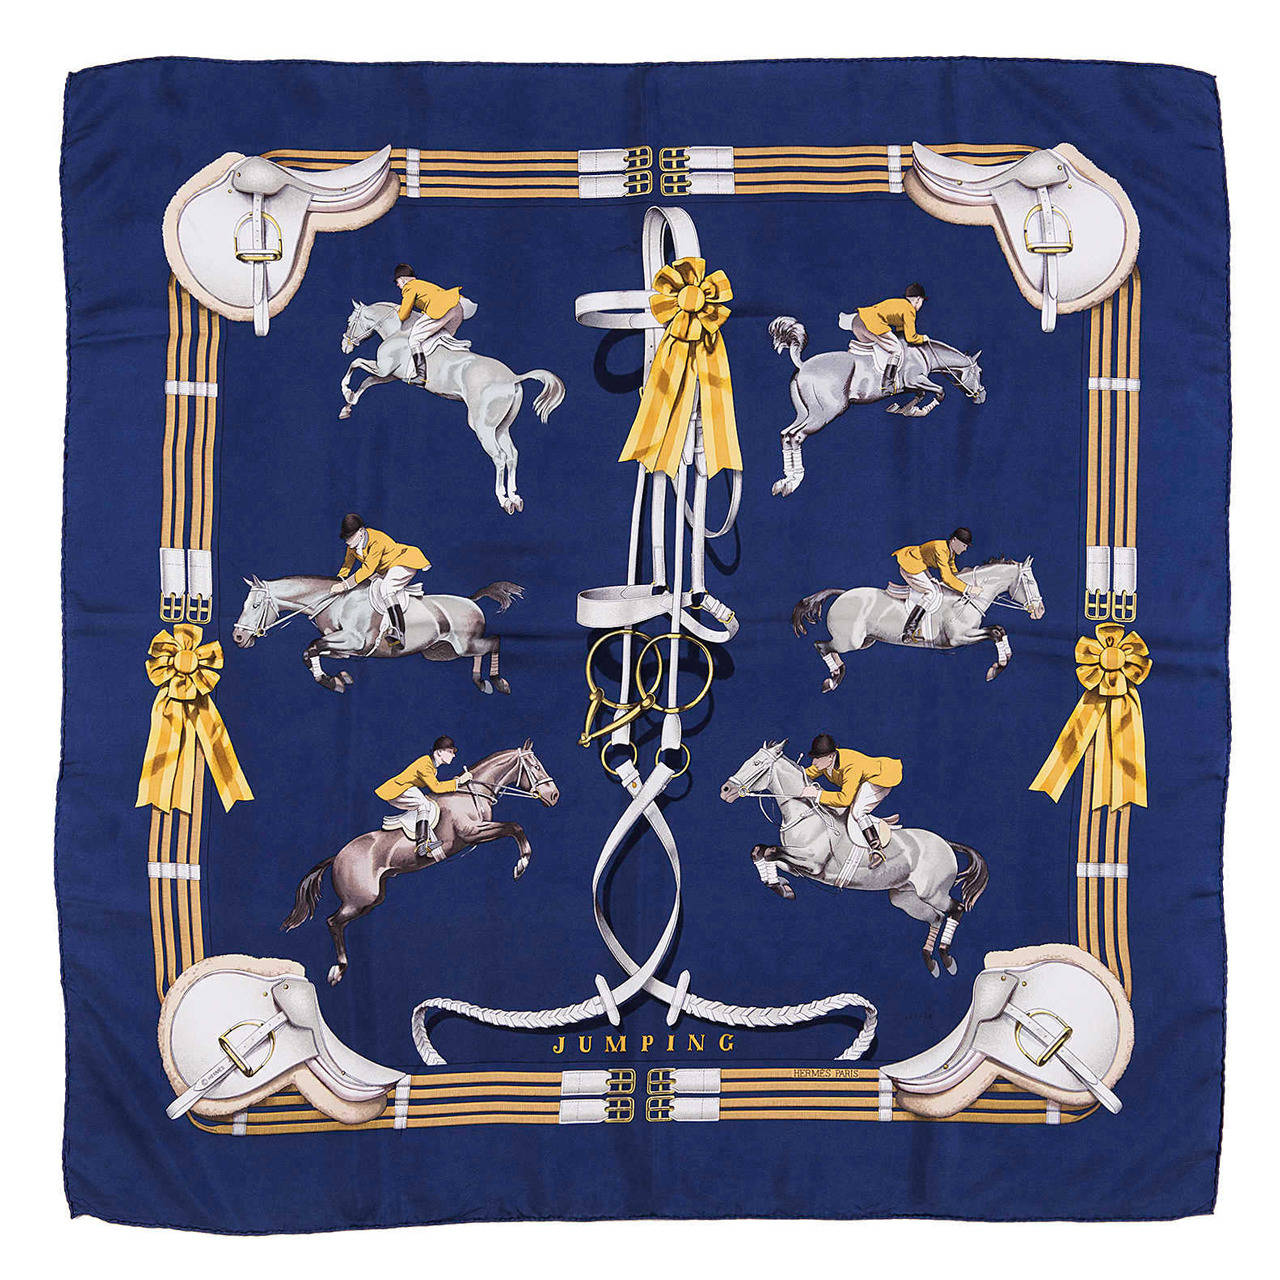 hermes silk scarf jumping by philippe ledoux at 1stdibs